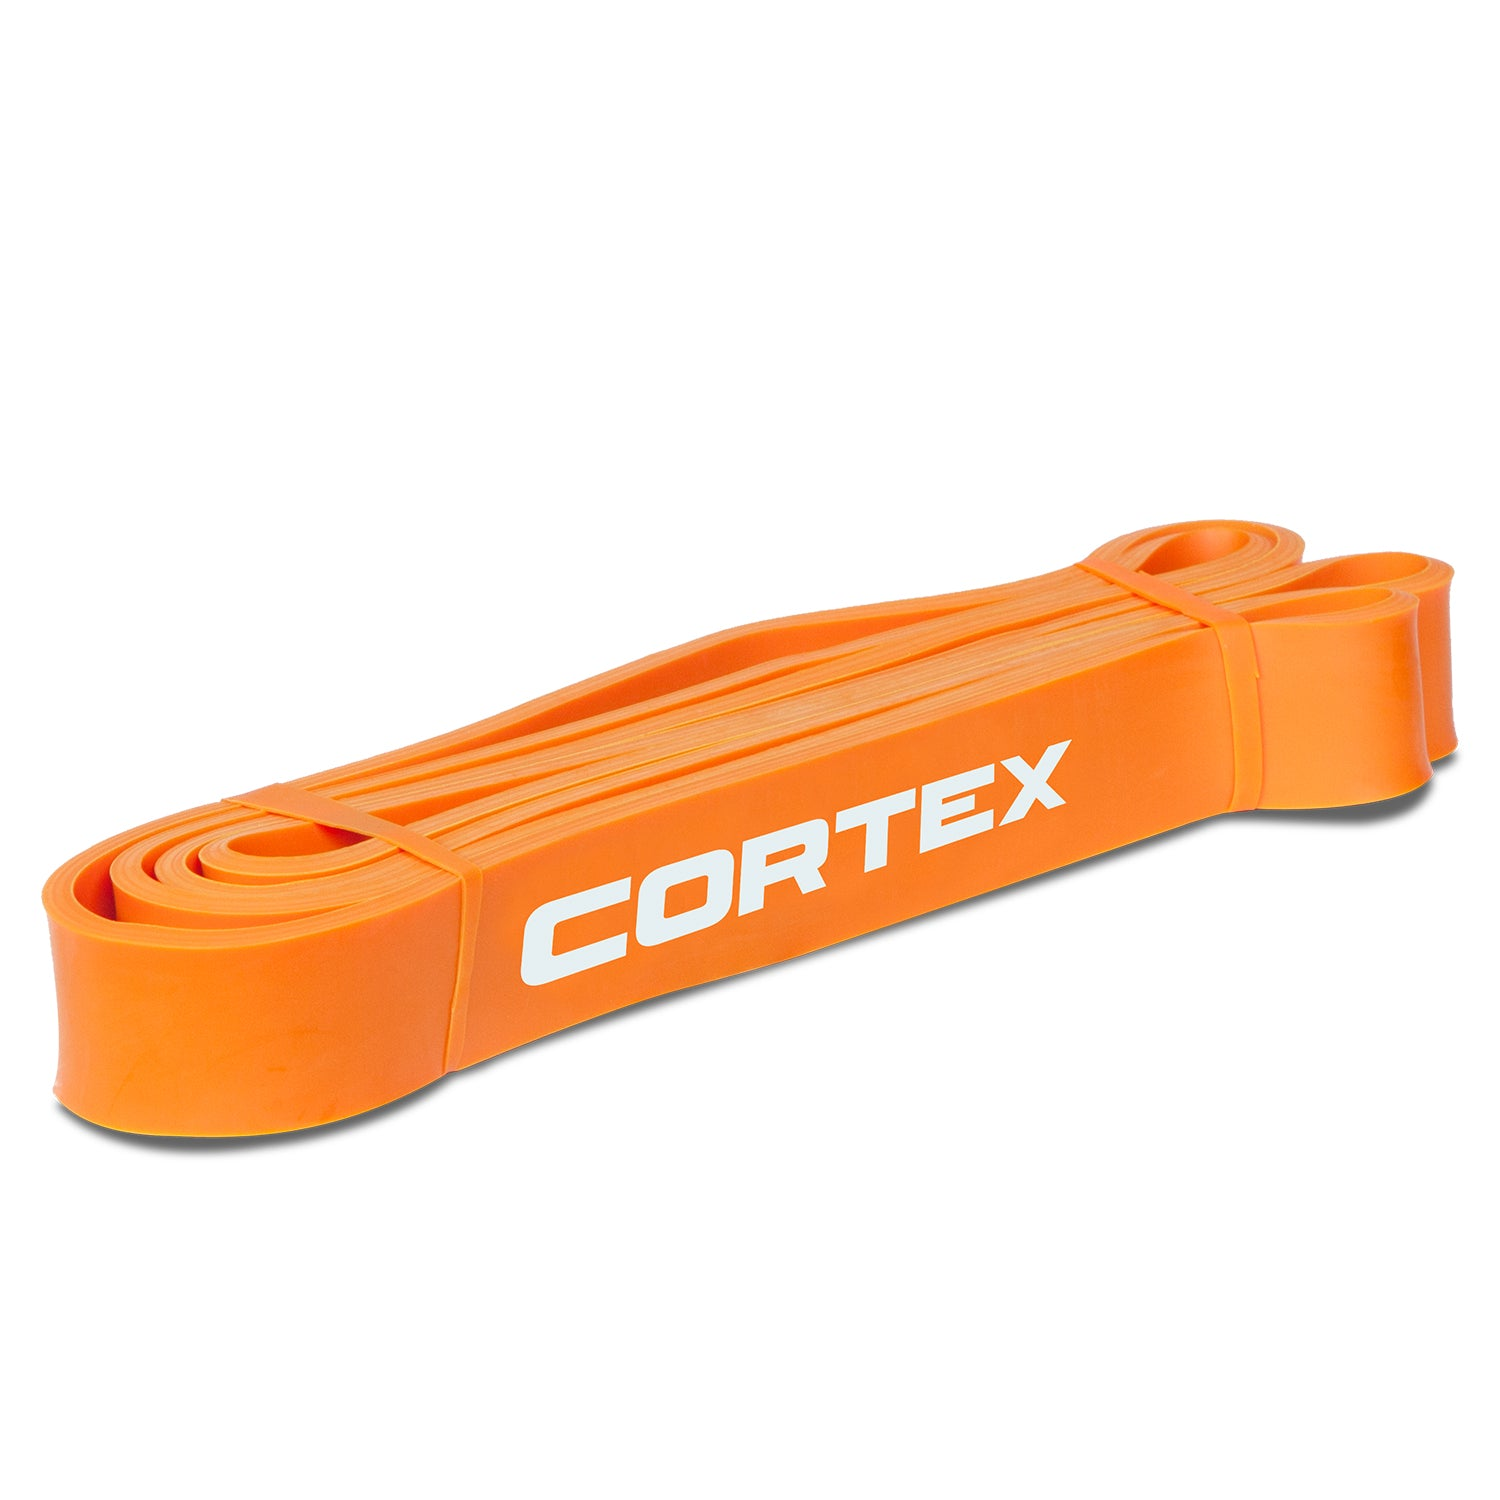 Cortex Resistance Band 32mm